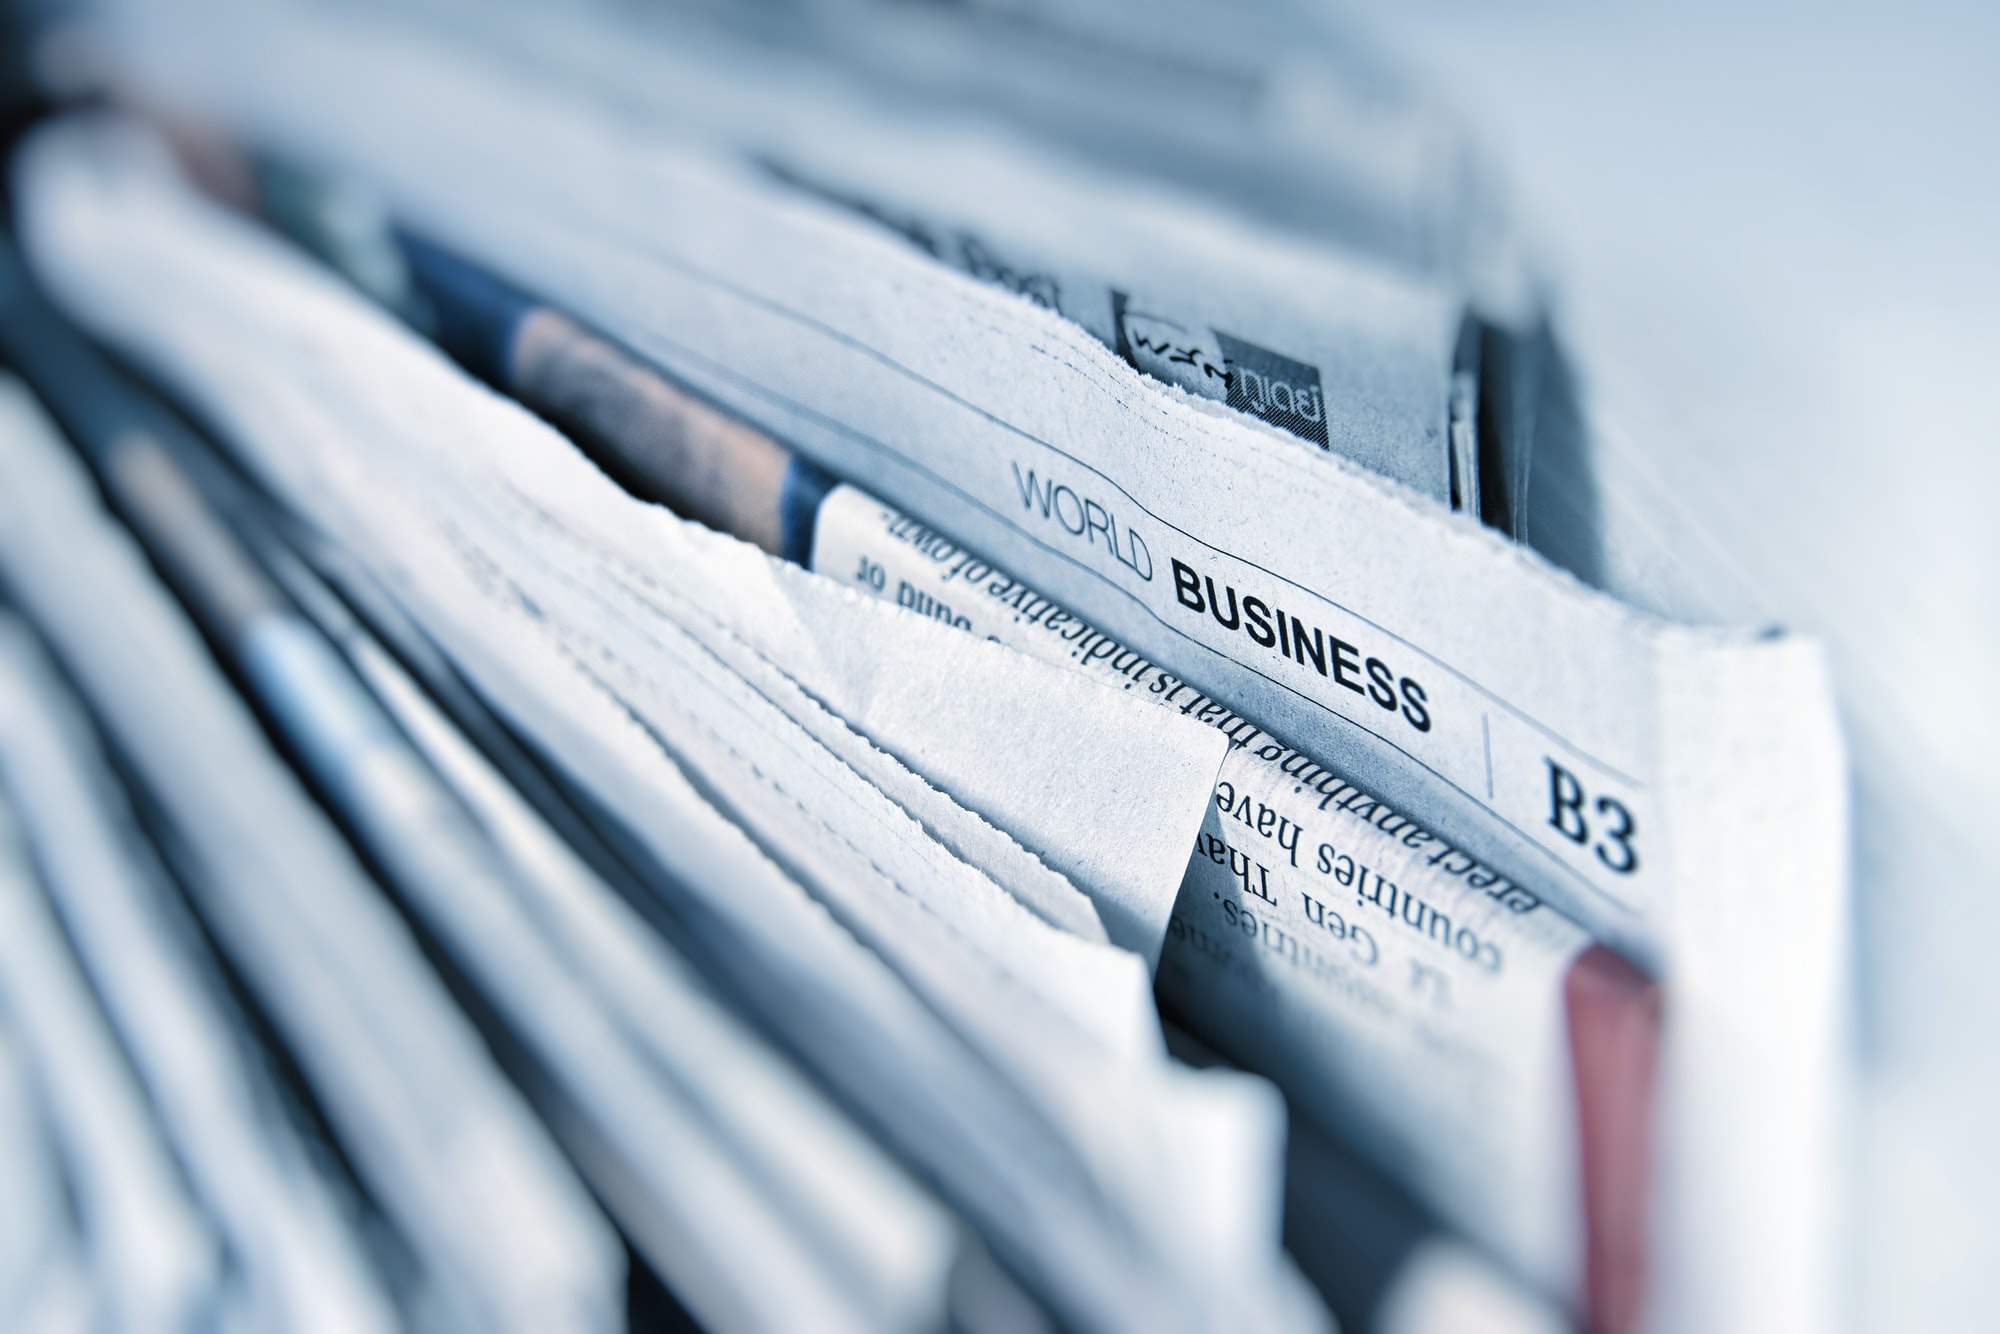 Start with your press release